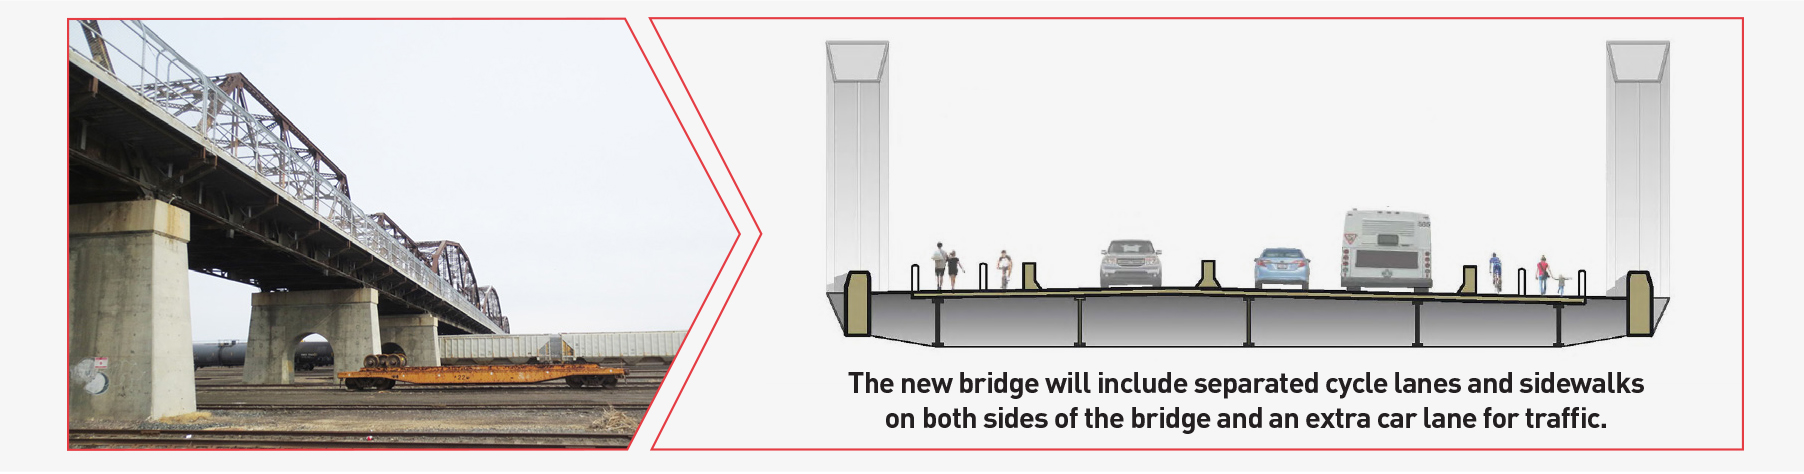 Arlington bridge cross section